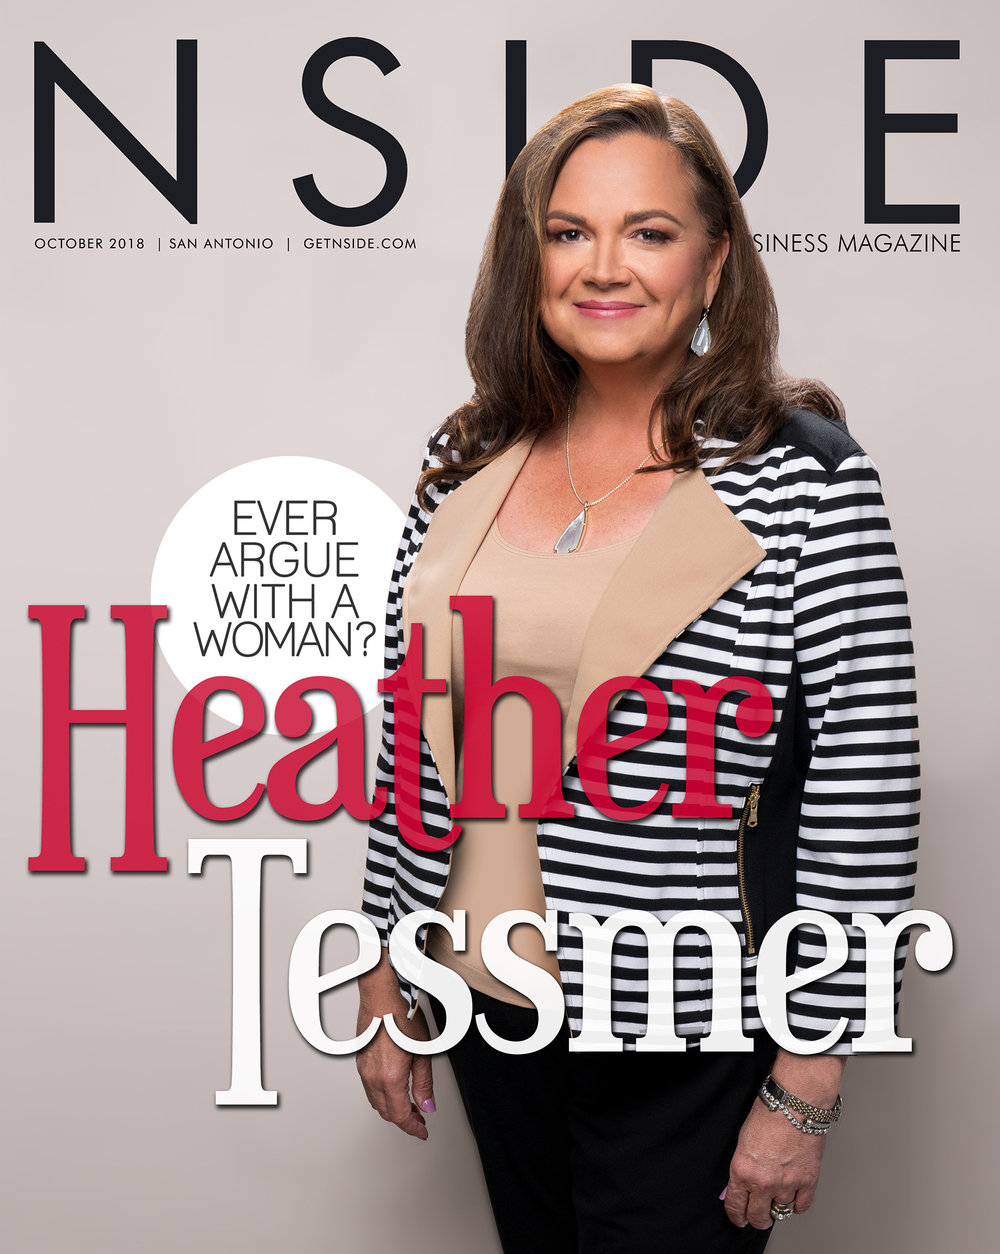 Business Profile - NSIDE - If Heather Tessmer looks familiar, it's because most likely you've seen her face before while driving along San Antonio's highways.